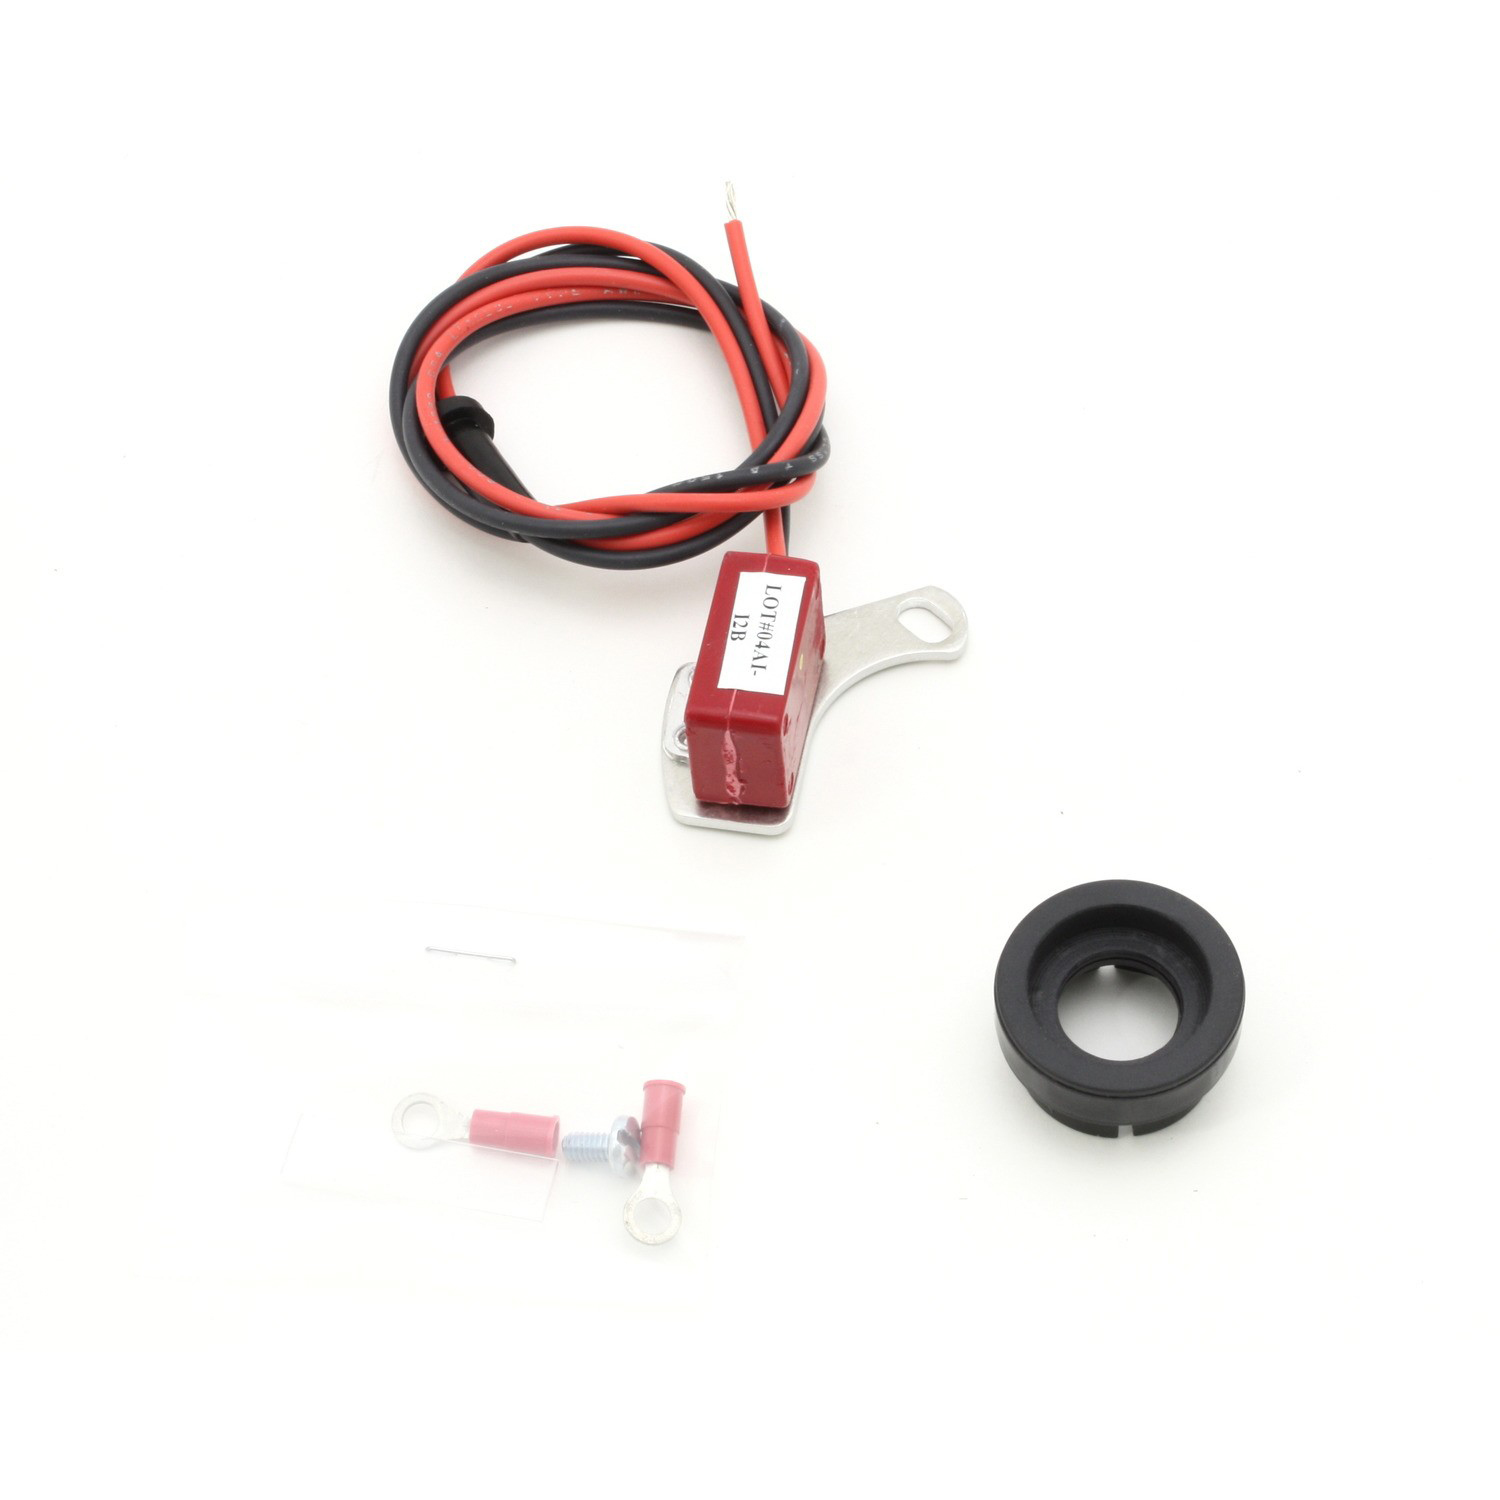 Pertronix Ignition 9AC-181 Ignition Conversion Kit, Ignitor II, Points to Electronic, Magnetic Trigger, Accel 8-Cylinder, Kit